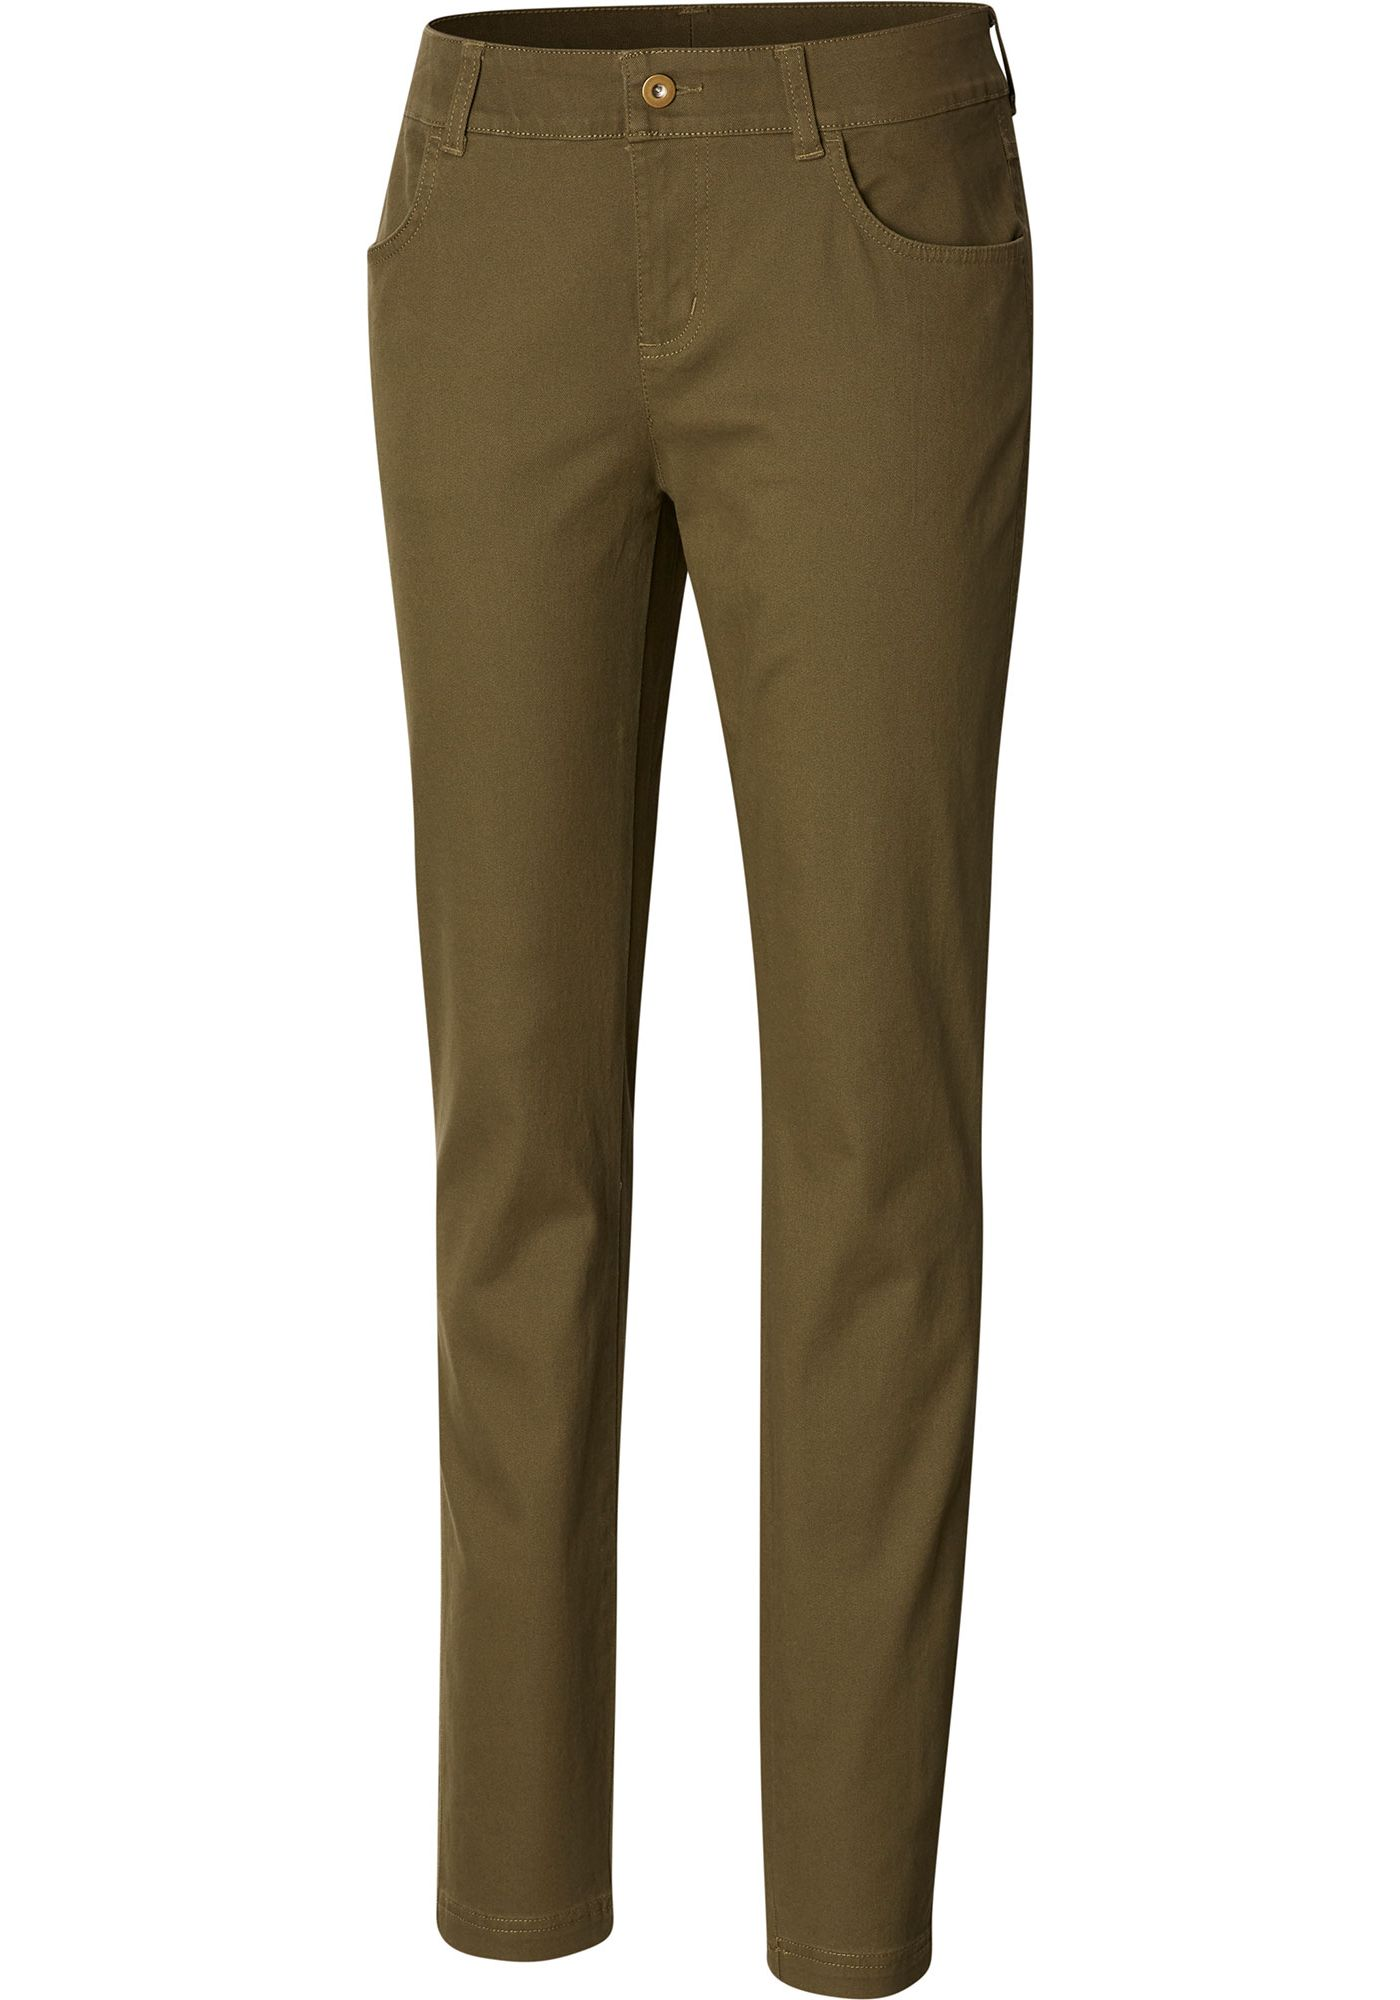 Columbia Women's Sellwood II Pants